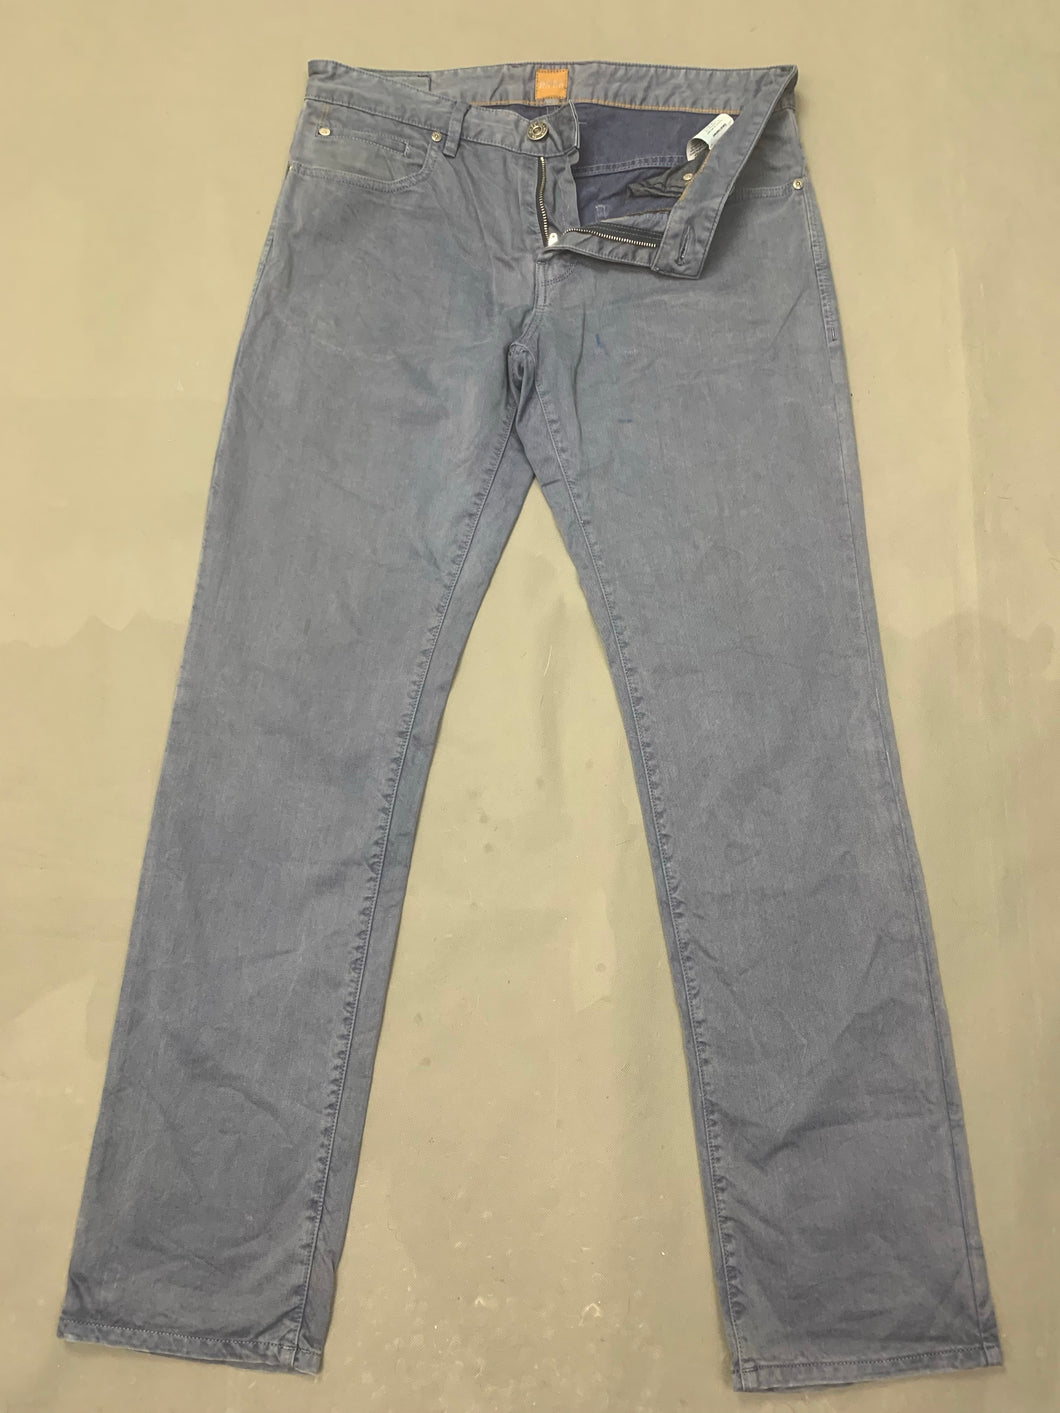 HUGO BOSS Mens ORANGE24 BARCELONA Denim JEANS Size Waist 34